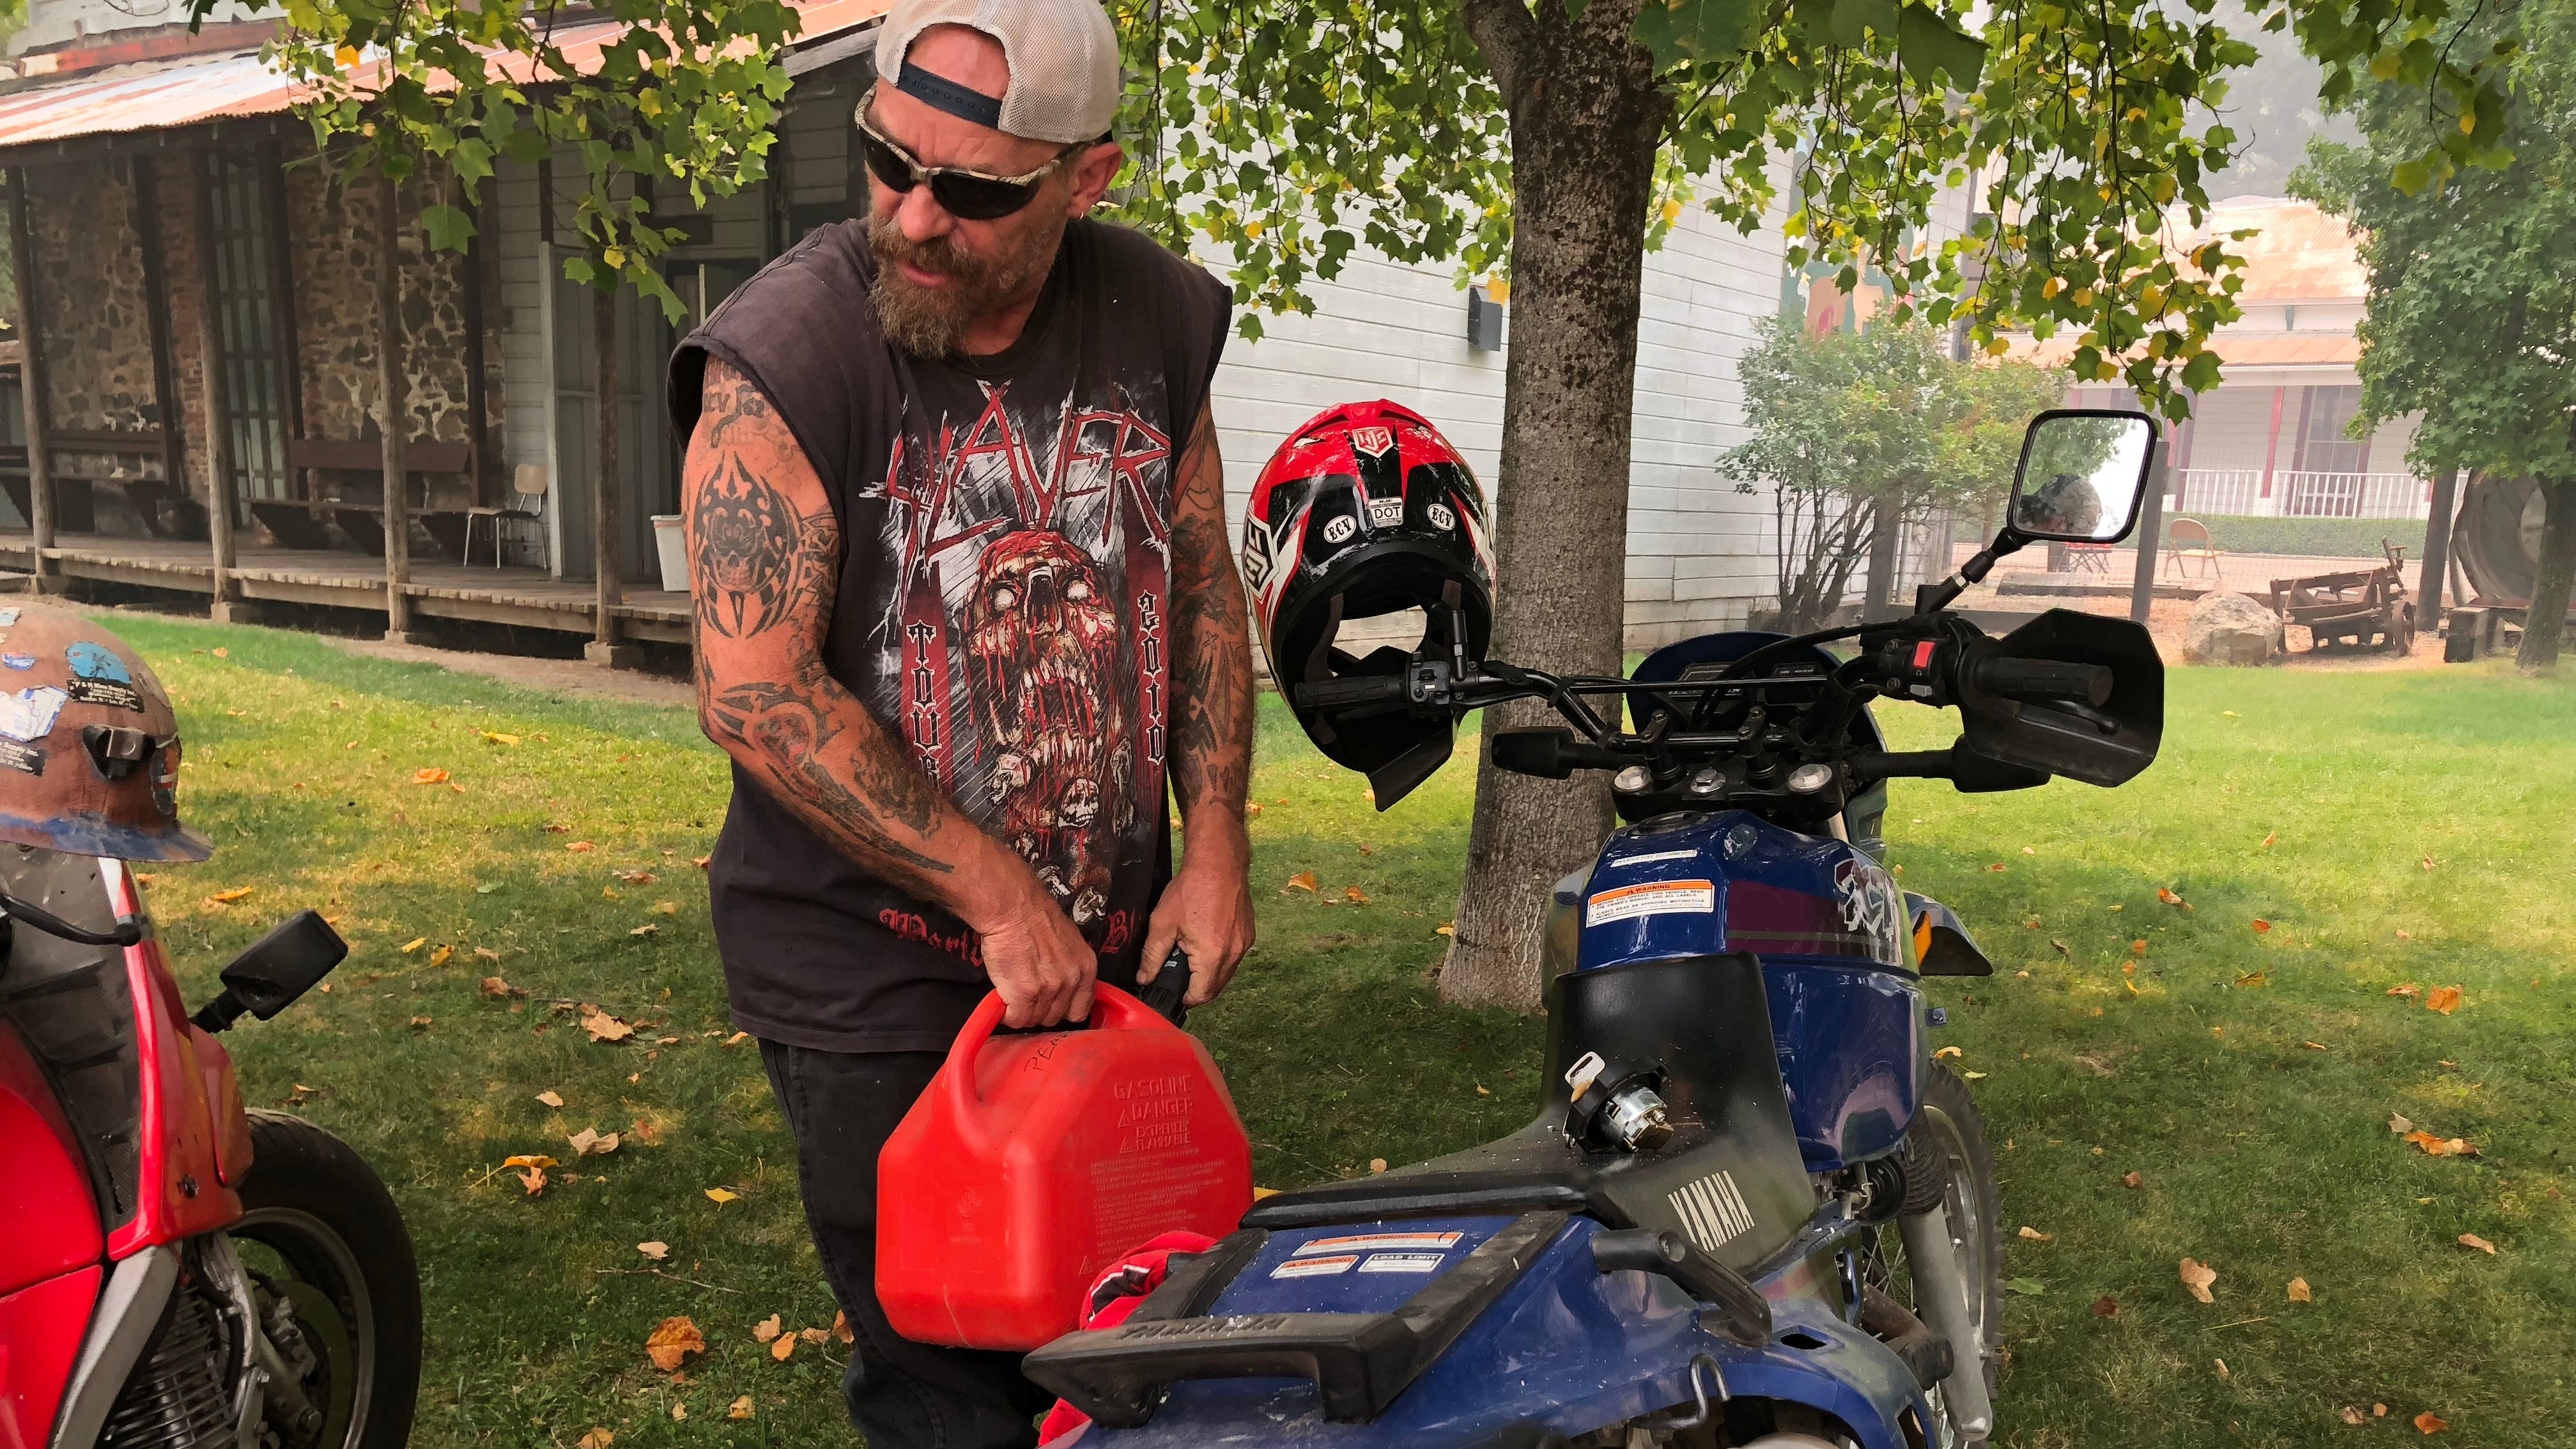 Brendan Kelly puts gas into a motorcycle in downtown French Gulch on Monday, July 30.